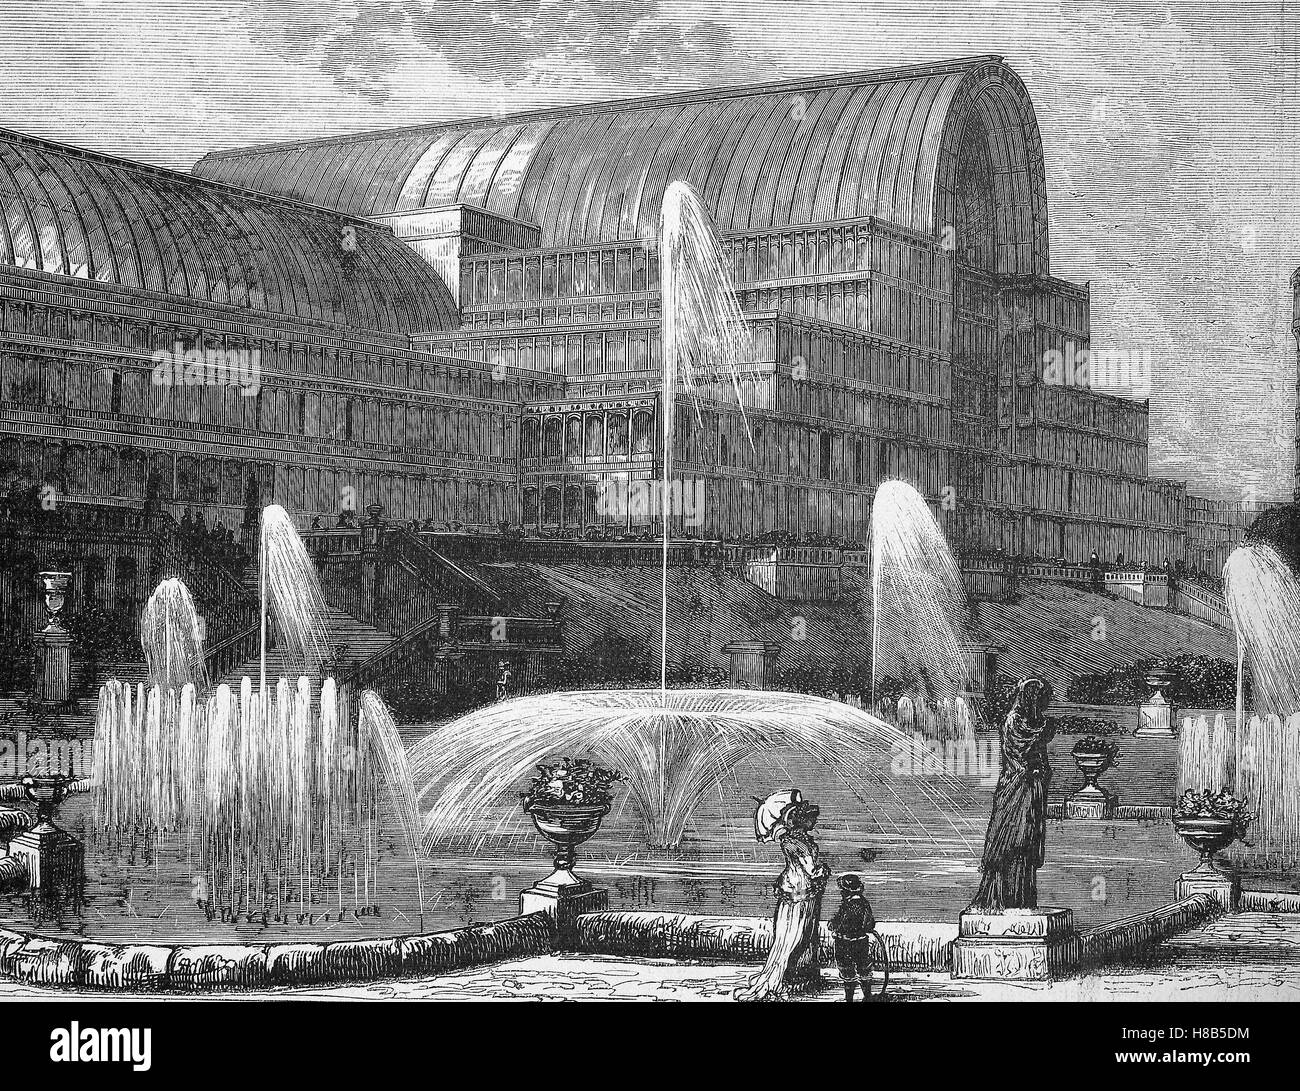 The Crystal Palace at Sydenham, London, Great Britain, Woodcut from 1892 - Stock Image